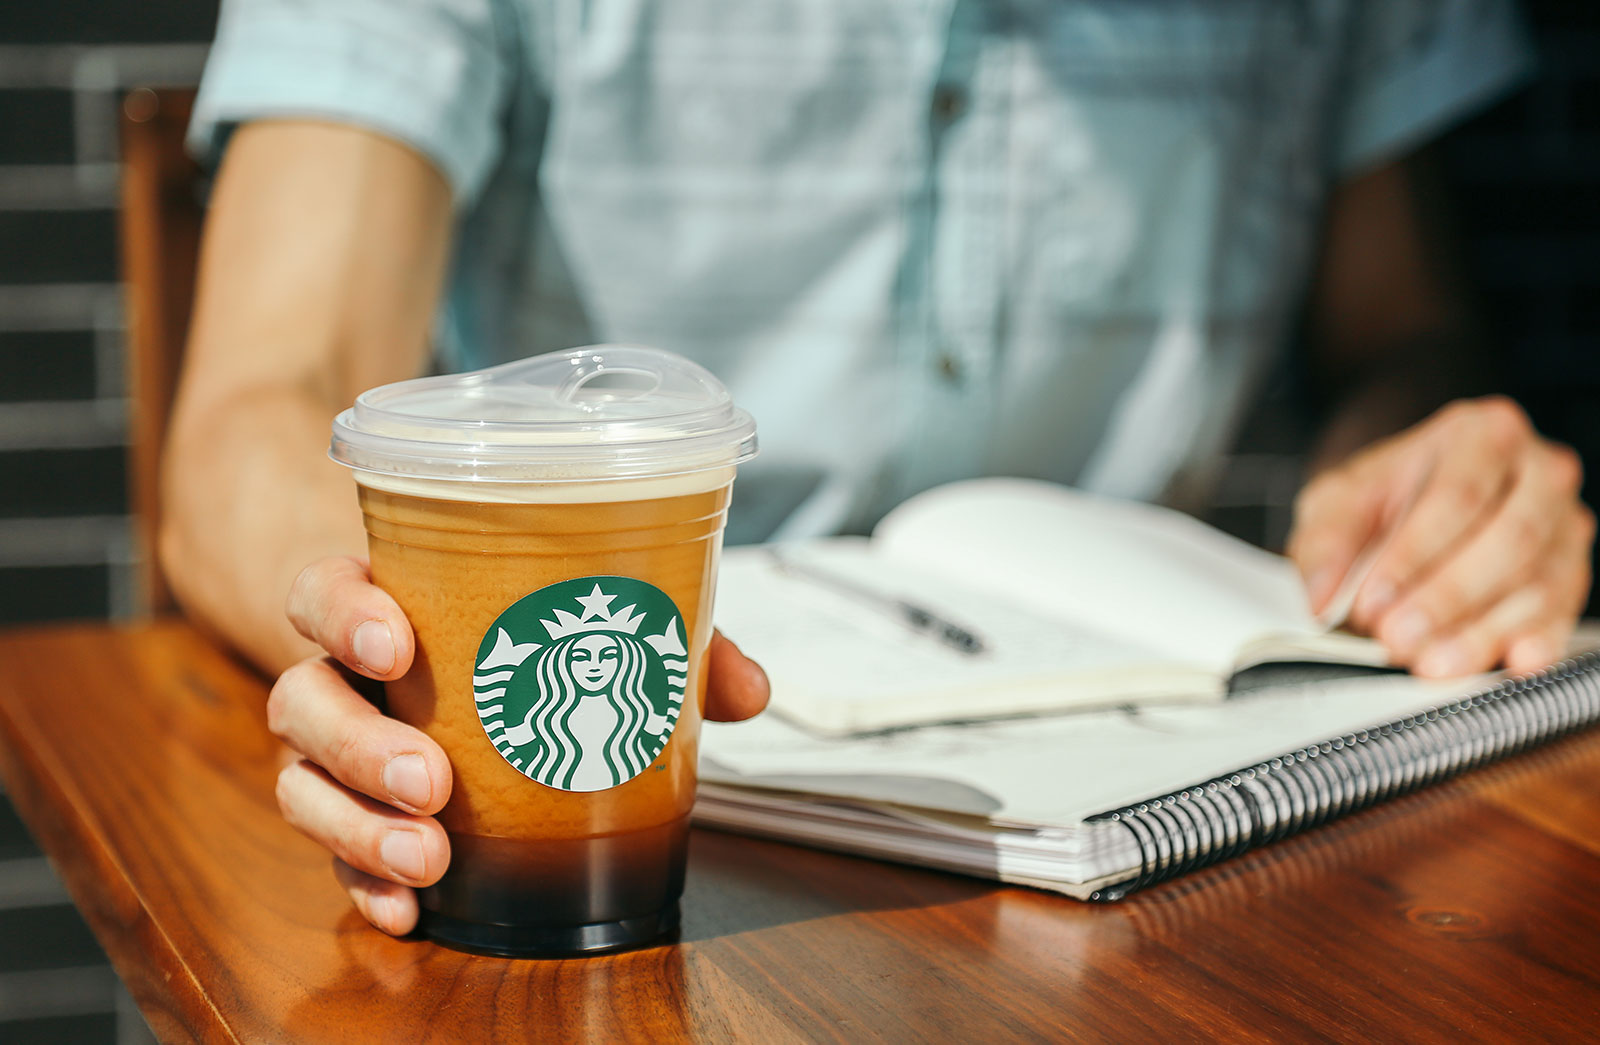 Starbucks debuted its strawless lid in 2018. (Starbucks)